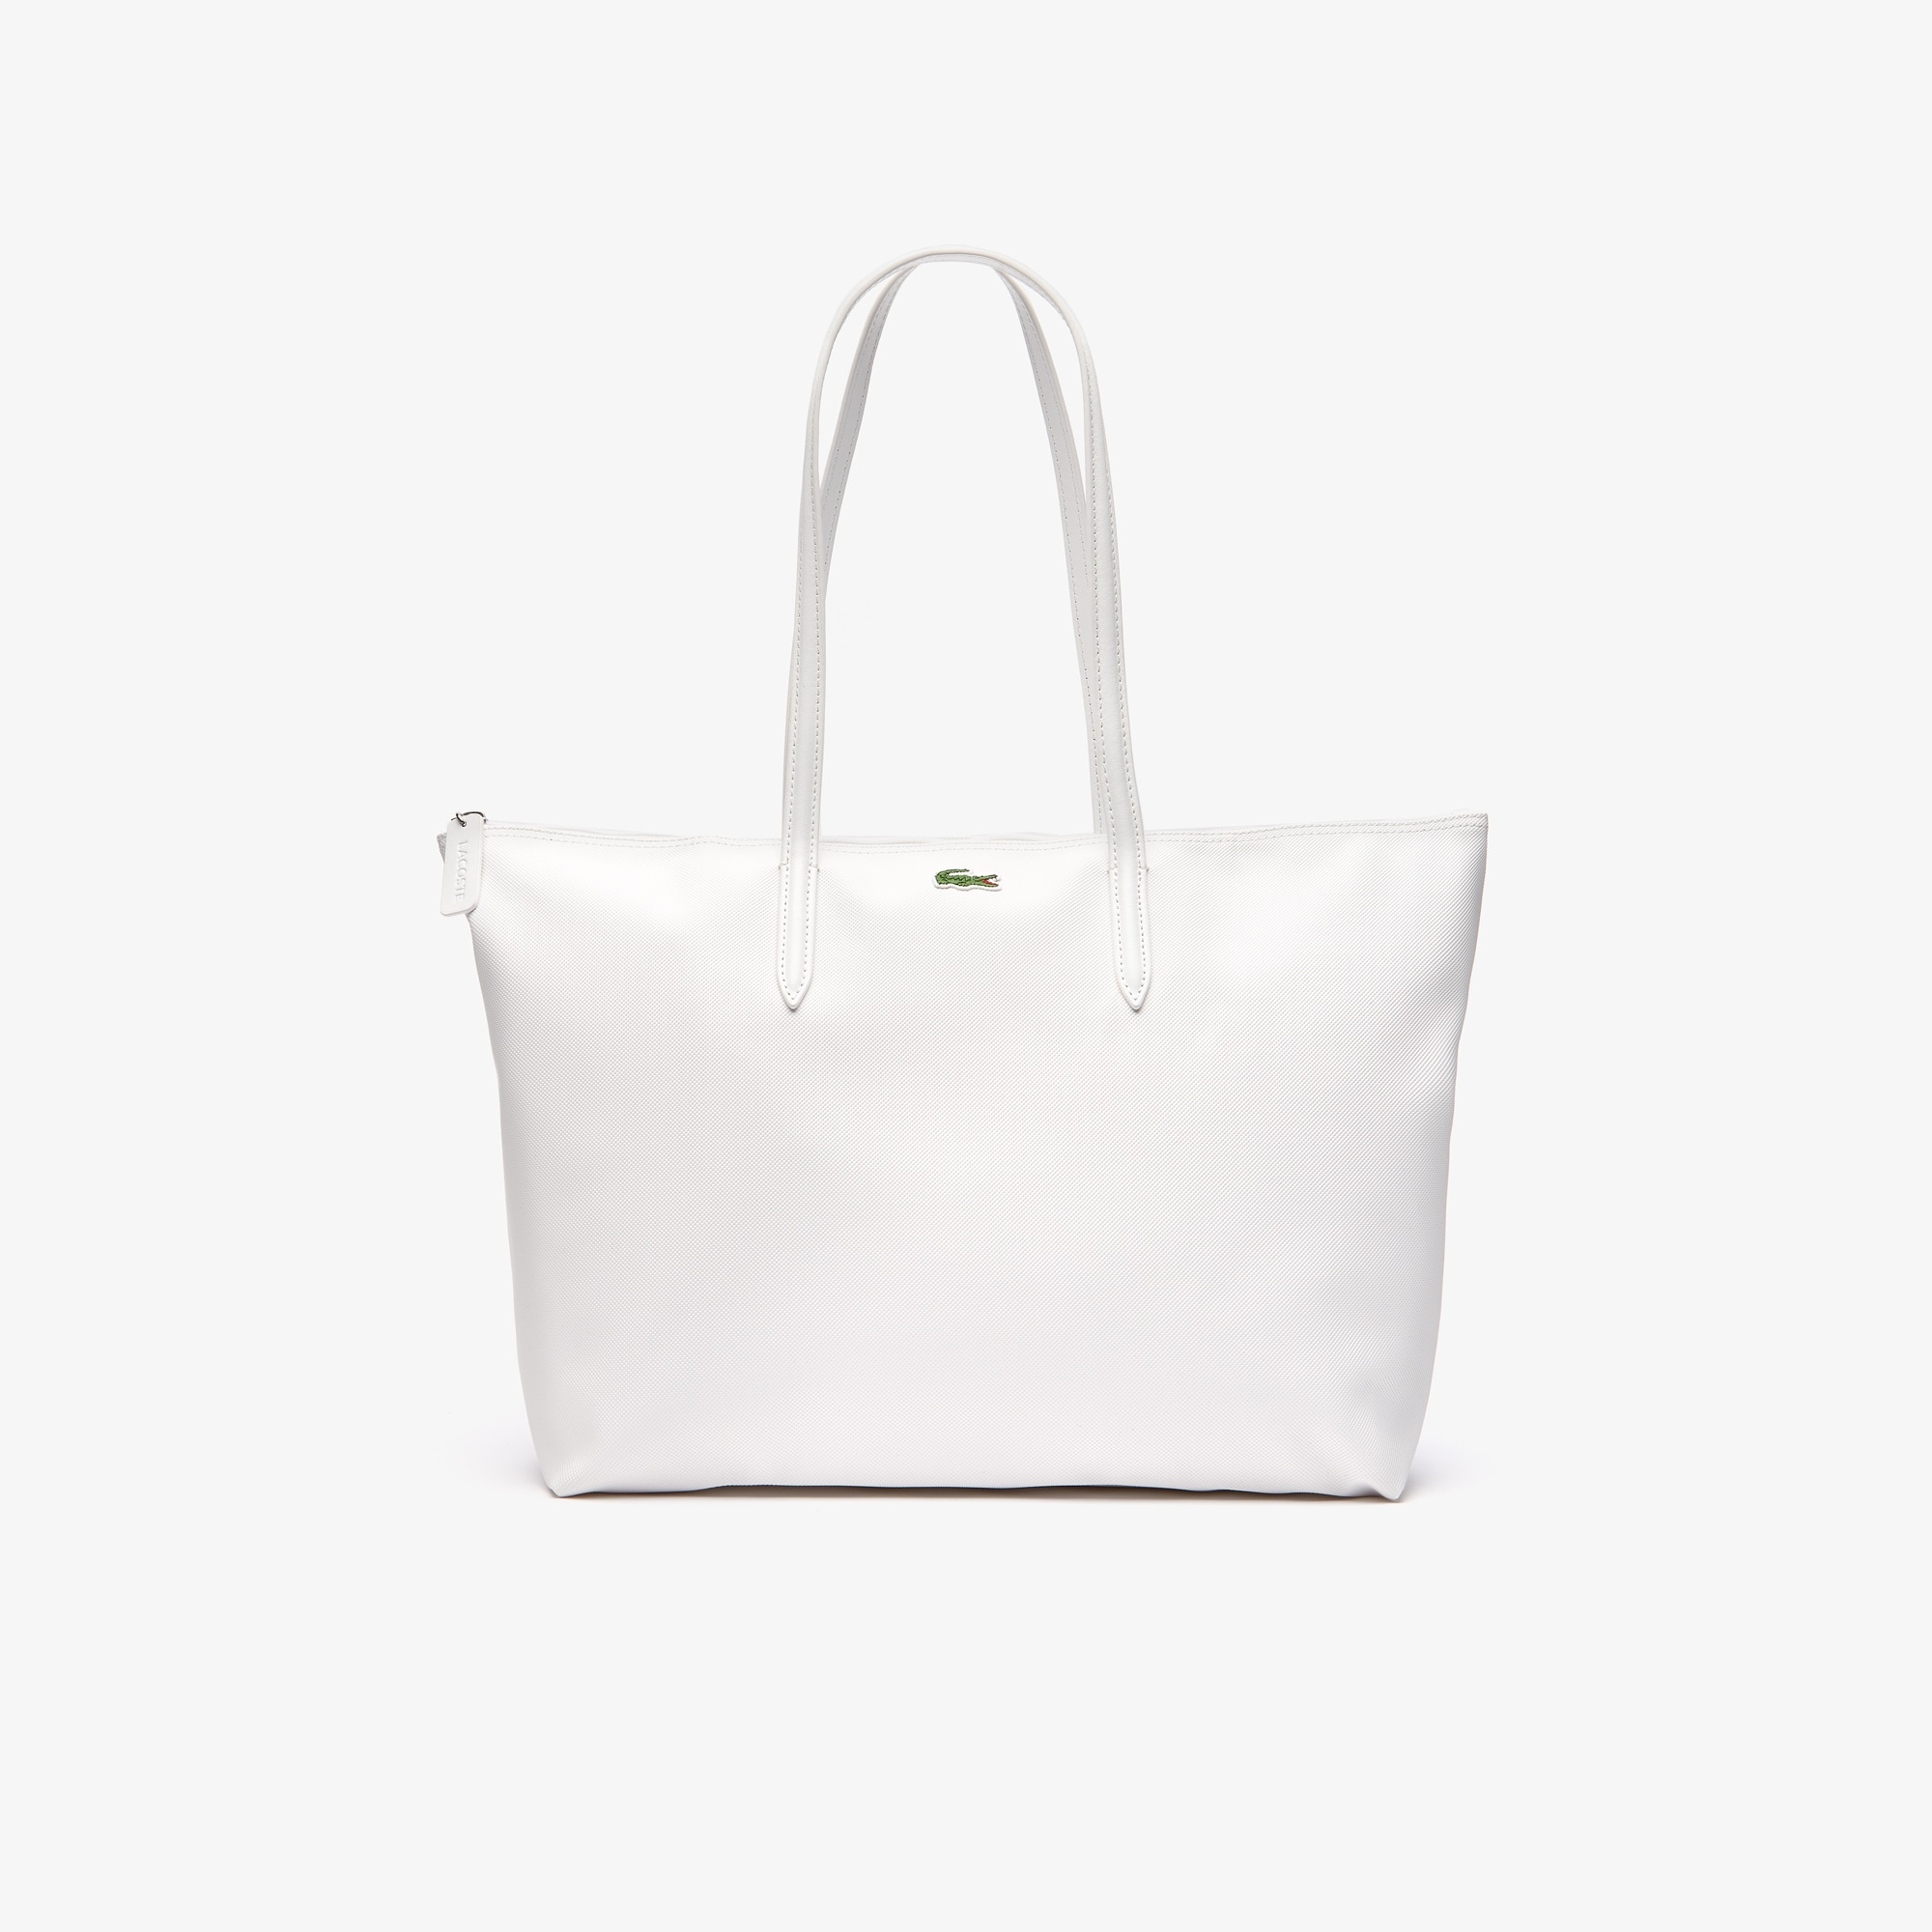 Women'S L.12.12 Concept Small Zip Tote Bag in Bright White from Lacoste